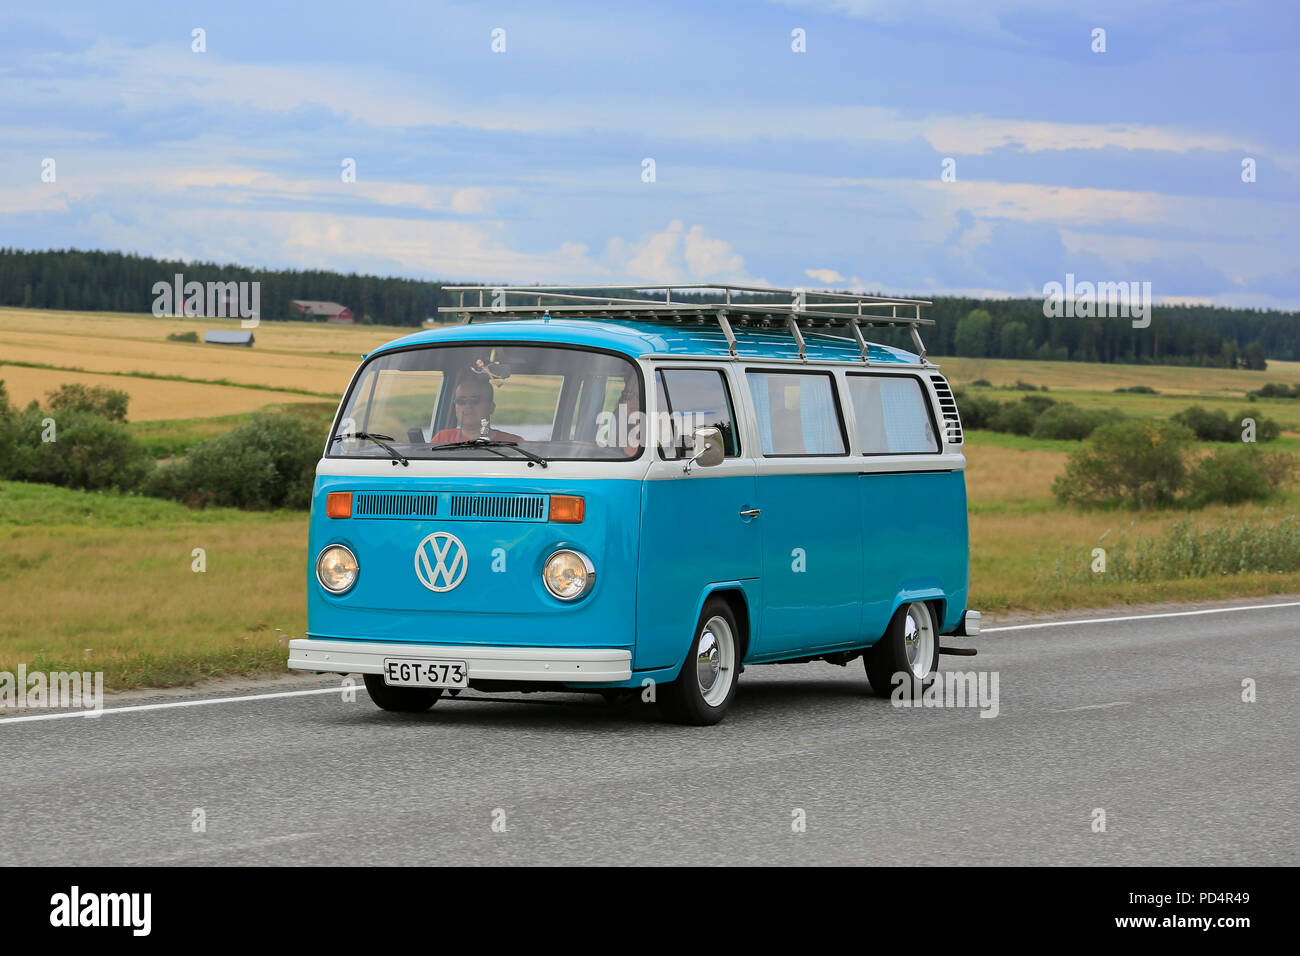 VAULAMMI, FINLAND - AUGUST 4, 2018: Classic Volkswagen turquoise and white Type 2 camper van on Maisemaruise 2018 car cruise in Tawastia Proper, Finla - Stock Image